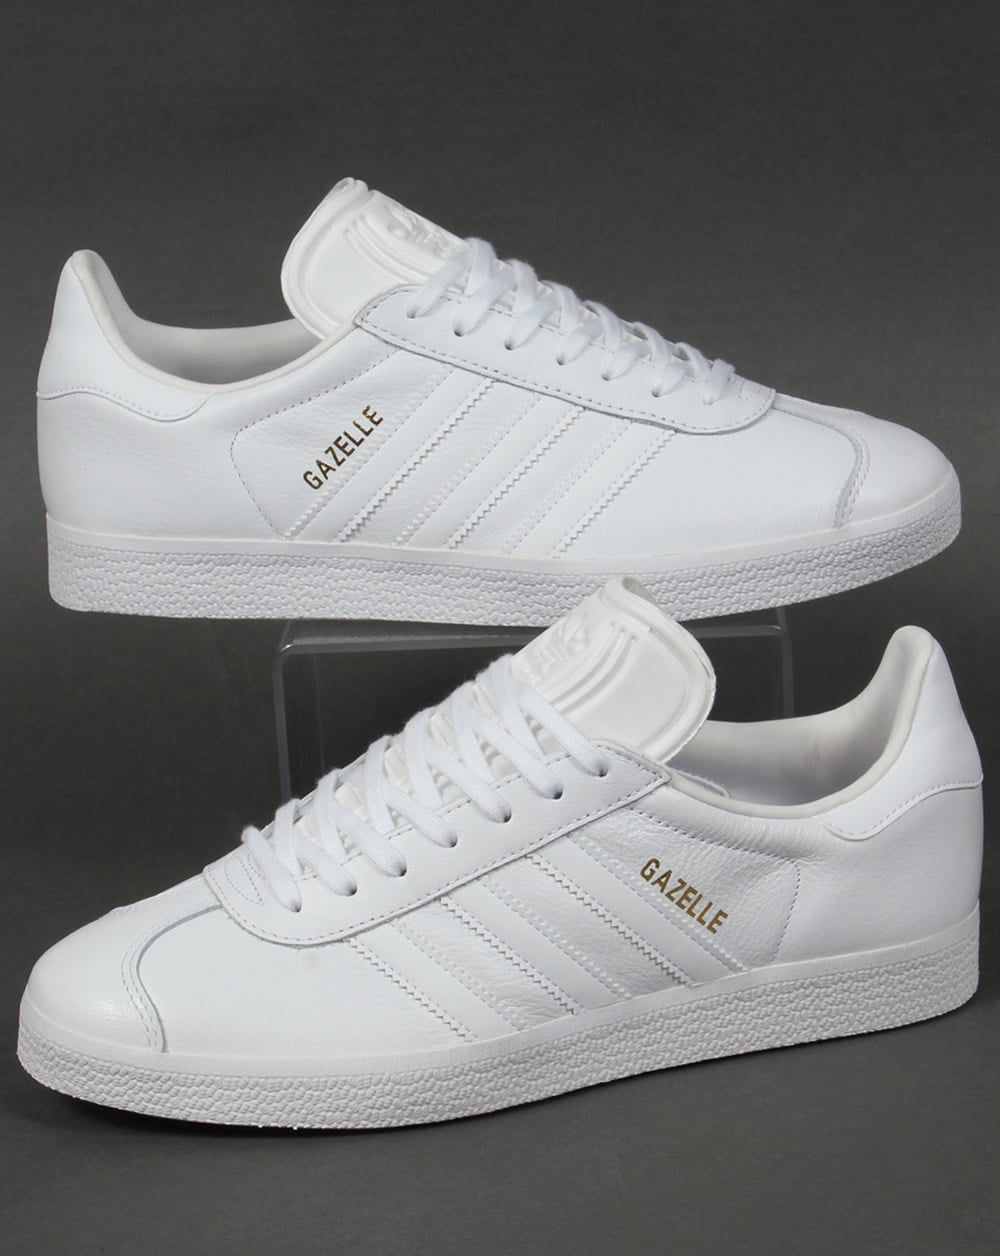 Adidas Gazelle Leather Trainers in White  02b509e9c34